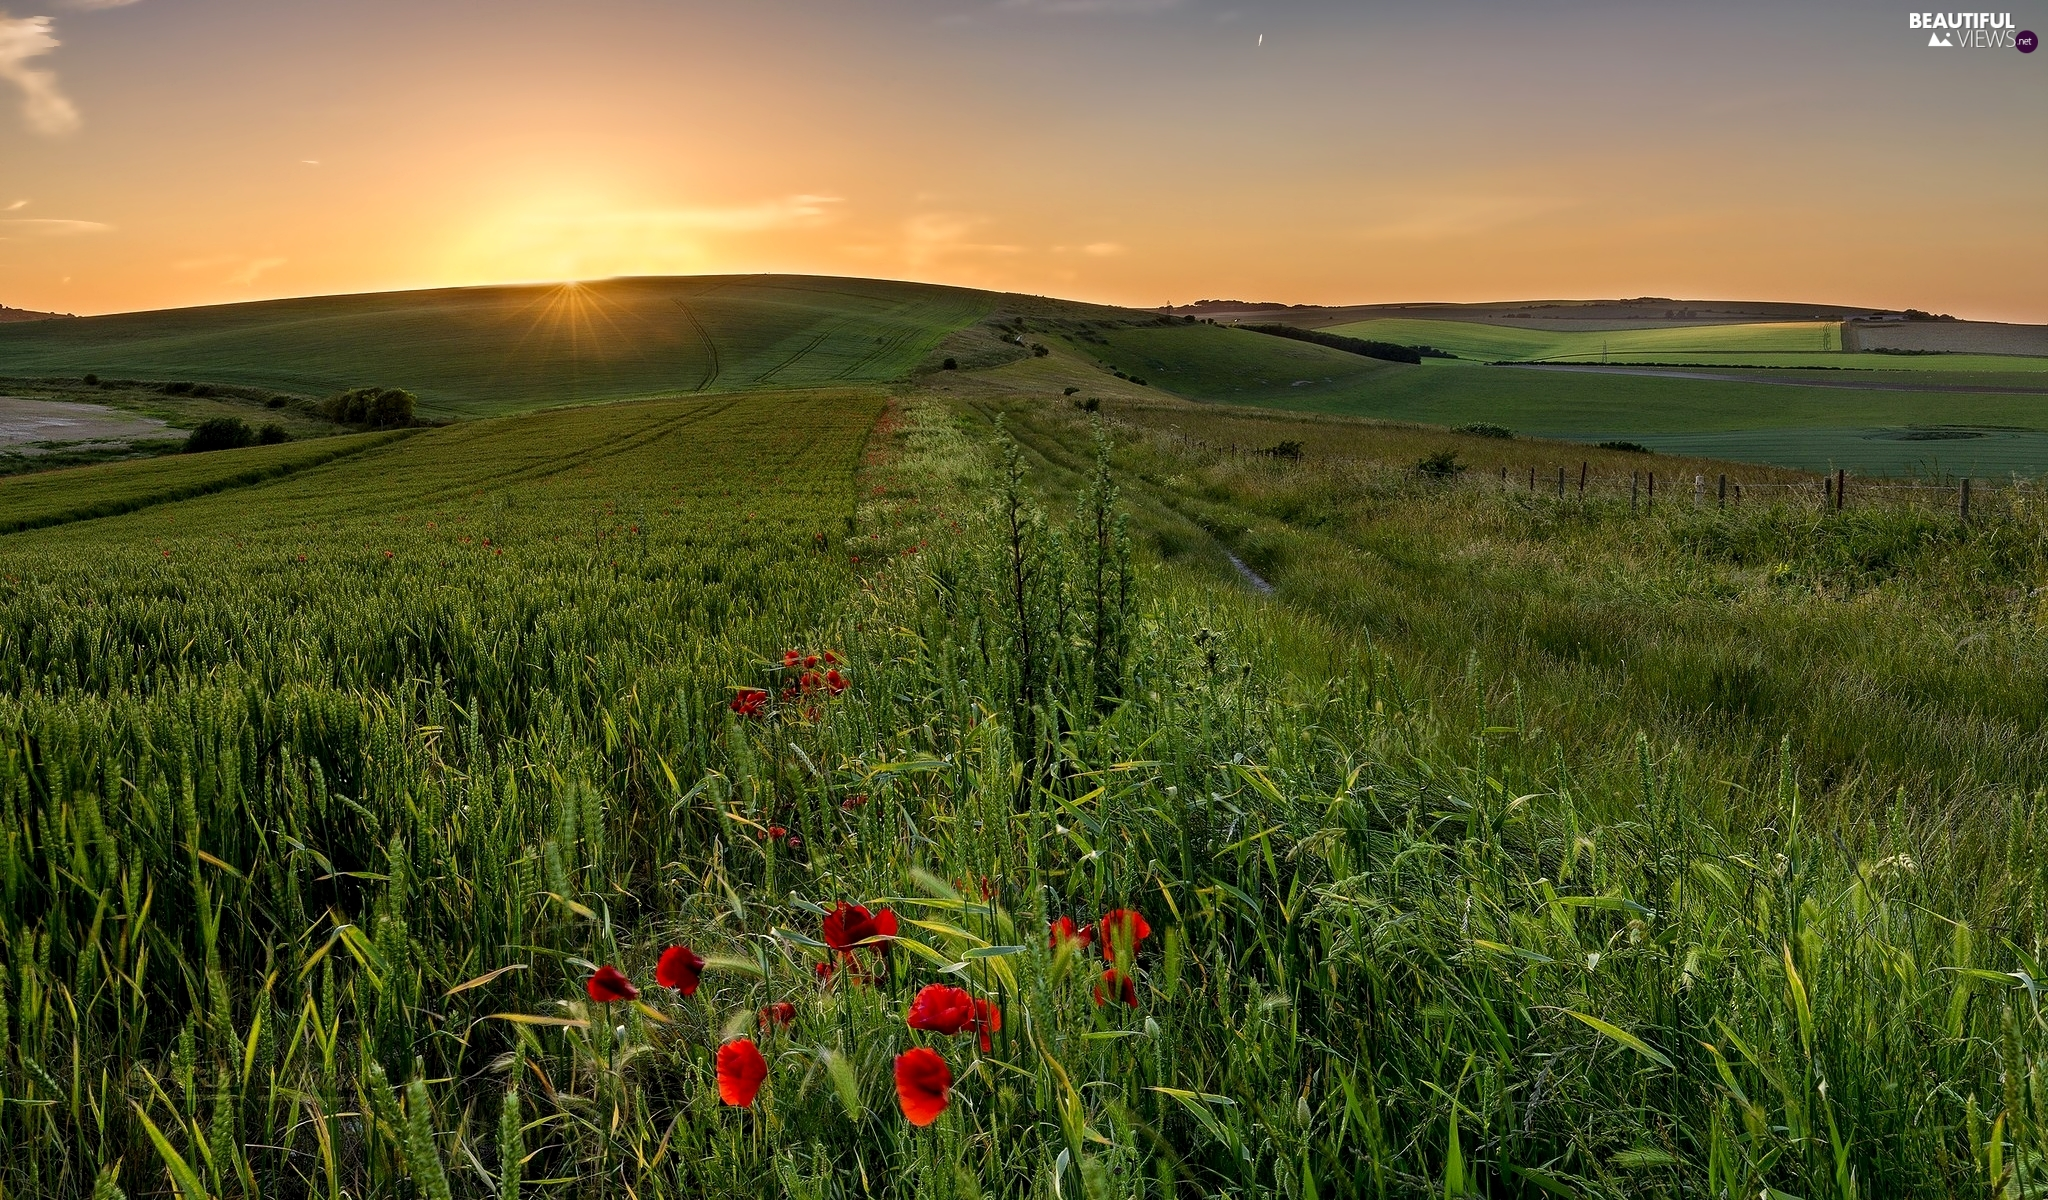 The Hills, papavers, Sunrise, Field